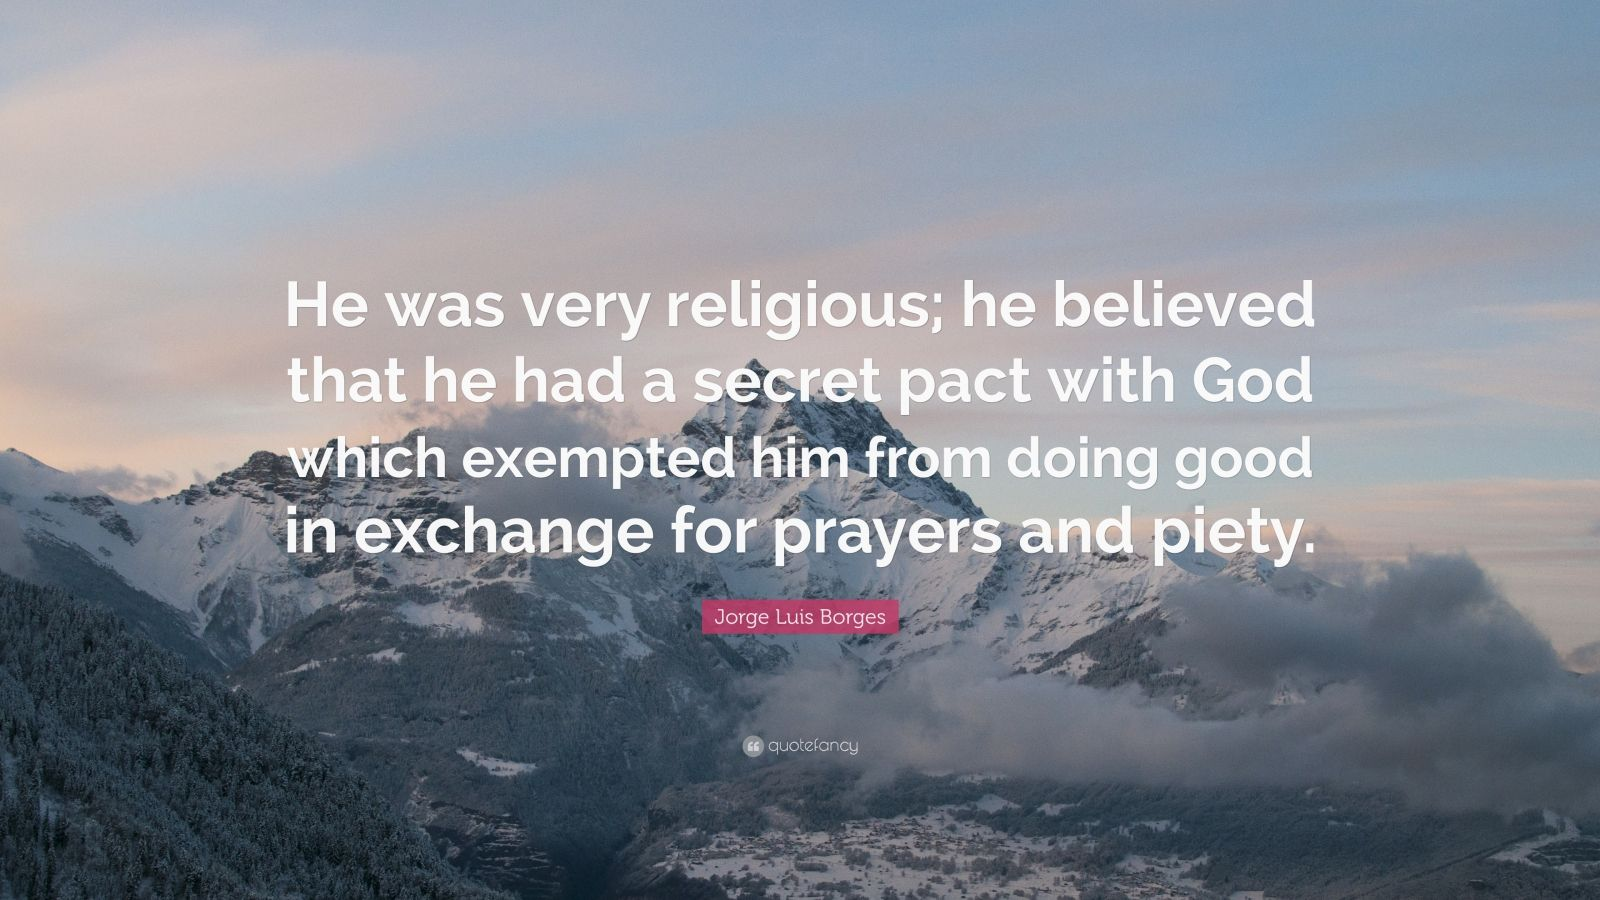 """Jorge Luis Borges Quote: """"He was very religious; he believed that he had a secret pact with God which exempted him from doing good in exchange for prayers and piety."""""""